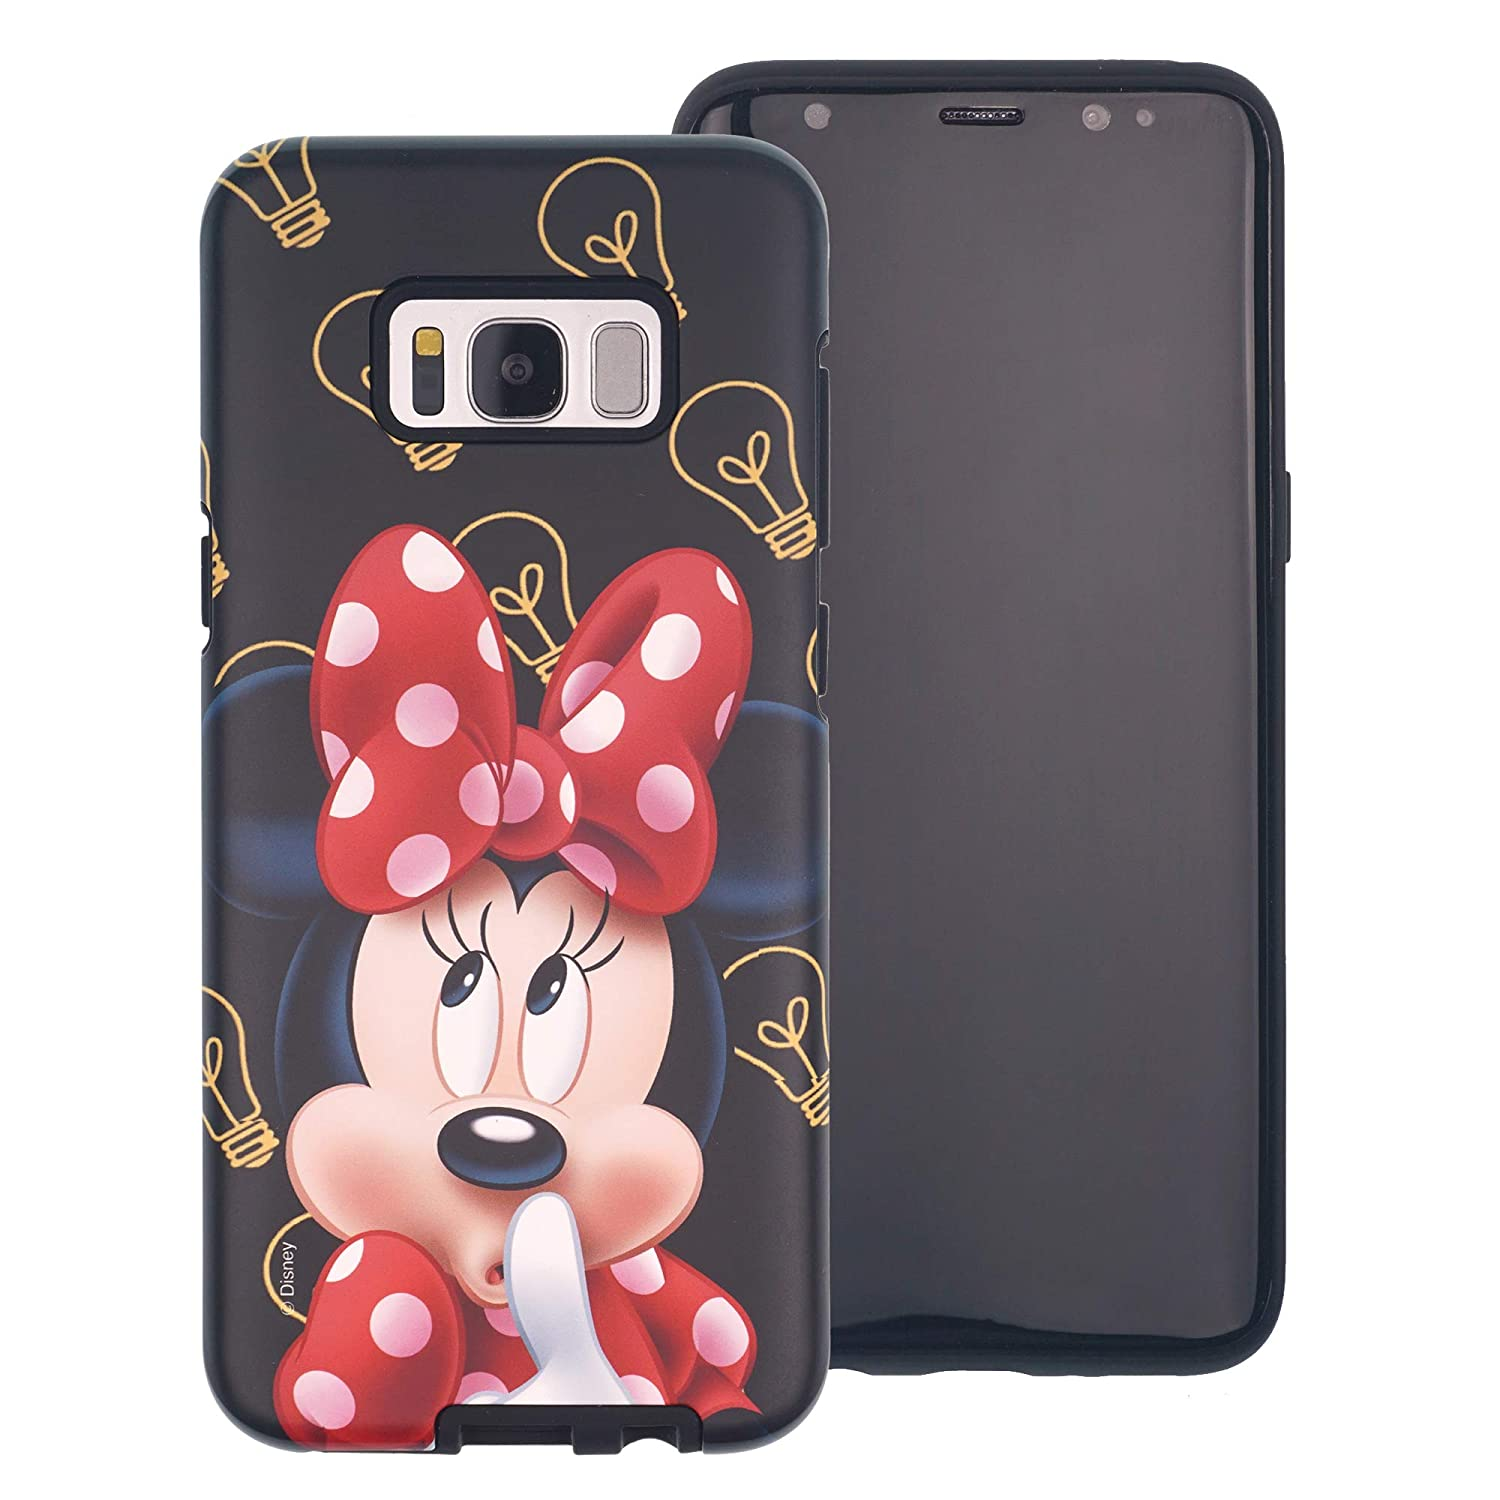 Galaxy S8 Plus Case, Cute Minnie Mouse Layered Hybrid [TPU + PC] Bumper Cover [Shock Absorption] for Galaxy S8 Plus - Idea Minnie Mouse